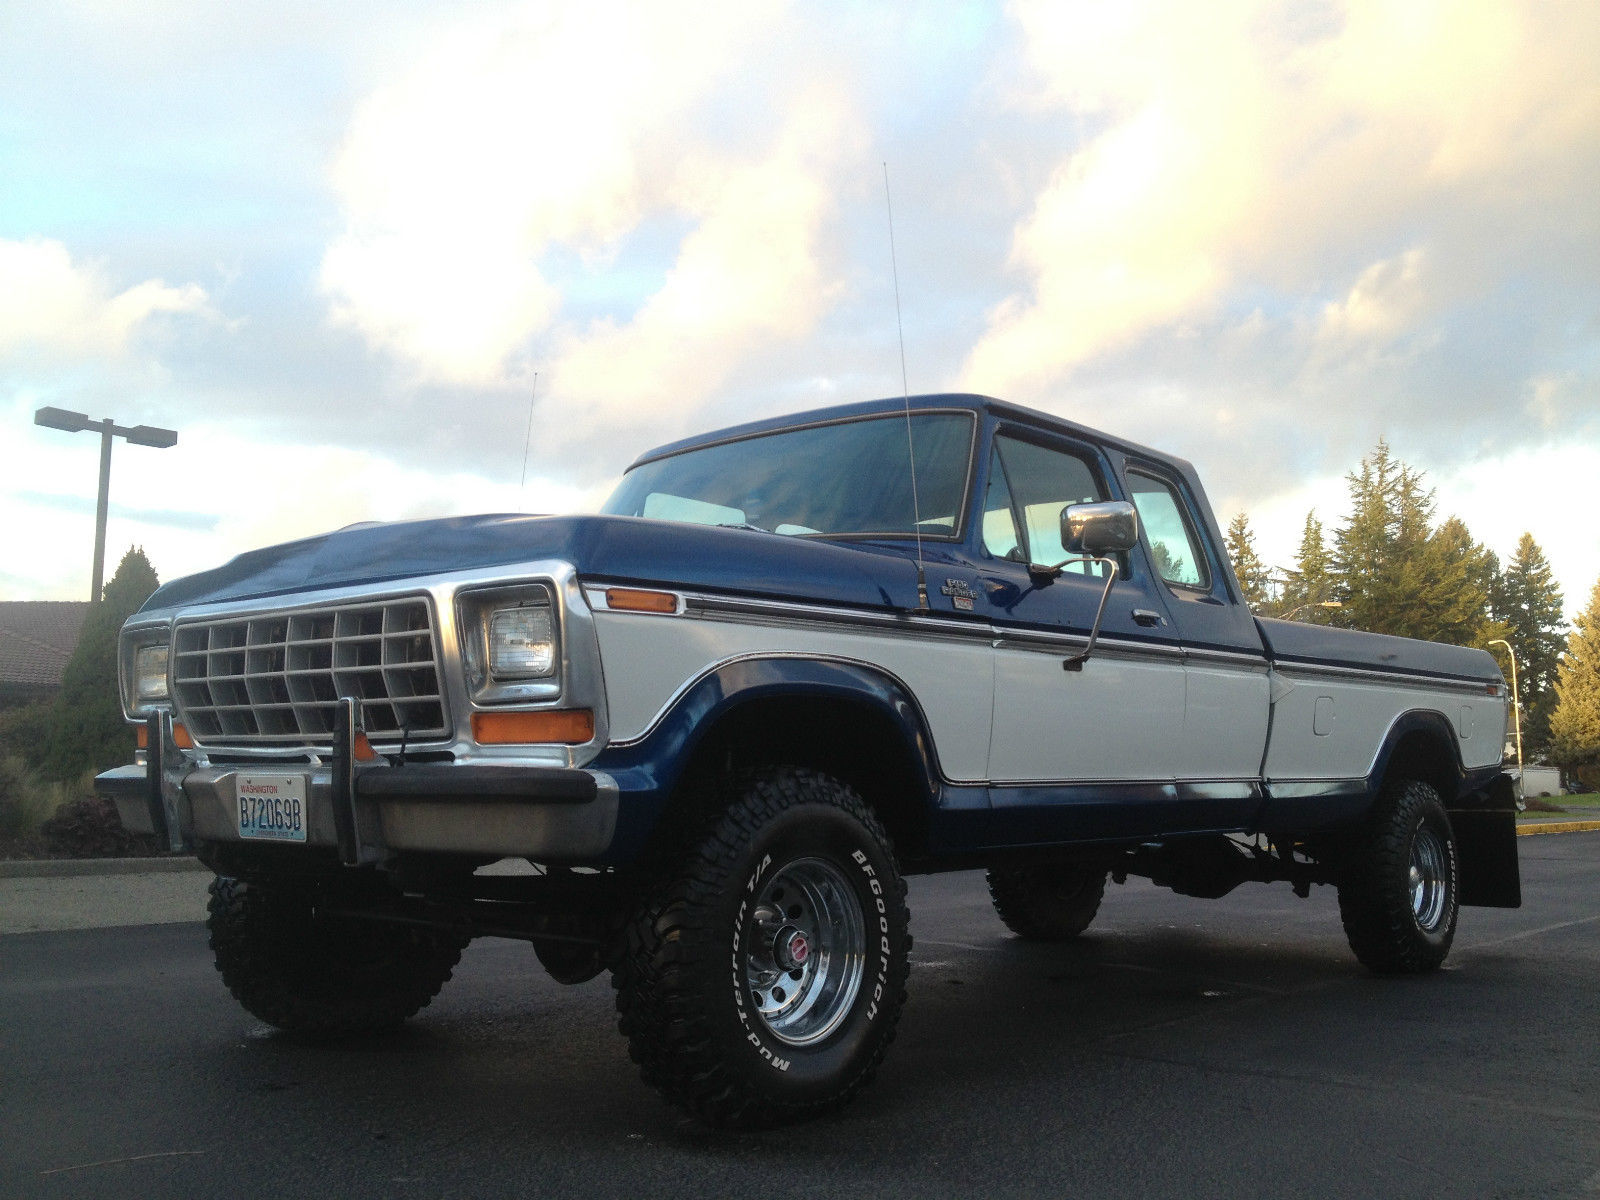 1978 Ford F 150 Ranger Xlt Lariat Supercab 4x4 For Sale In Kirkland Washington United States For Sale Photos Technical Specifications Description